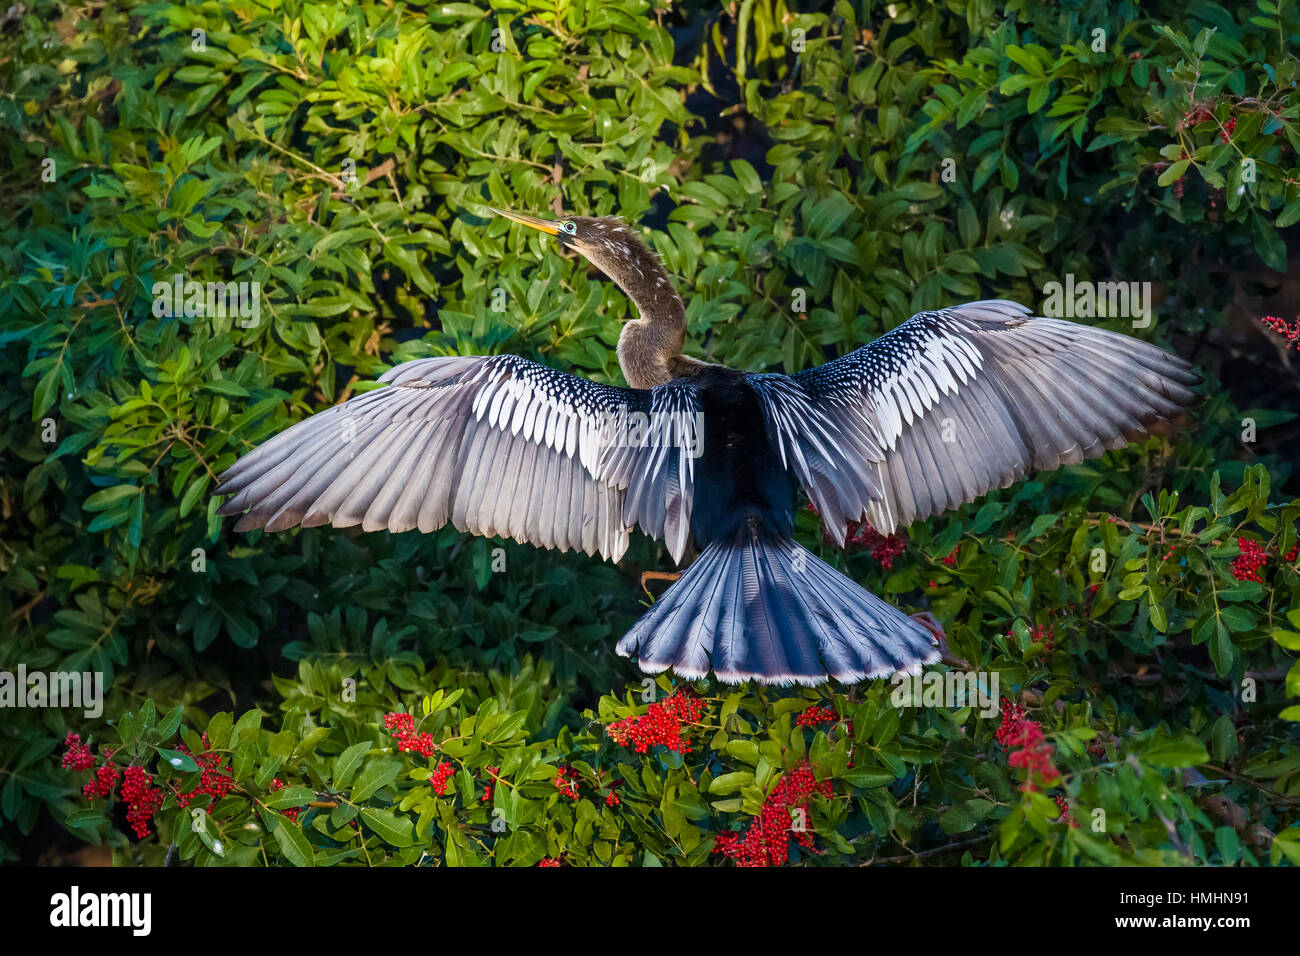 Anhinga dring his wings at Venice Rookery in Venice FLorida - Stock Image